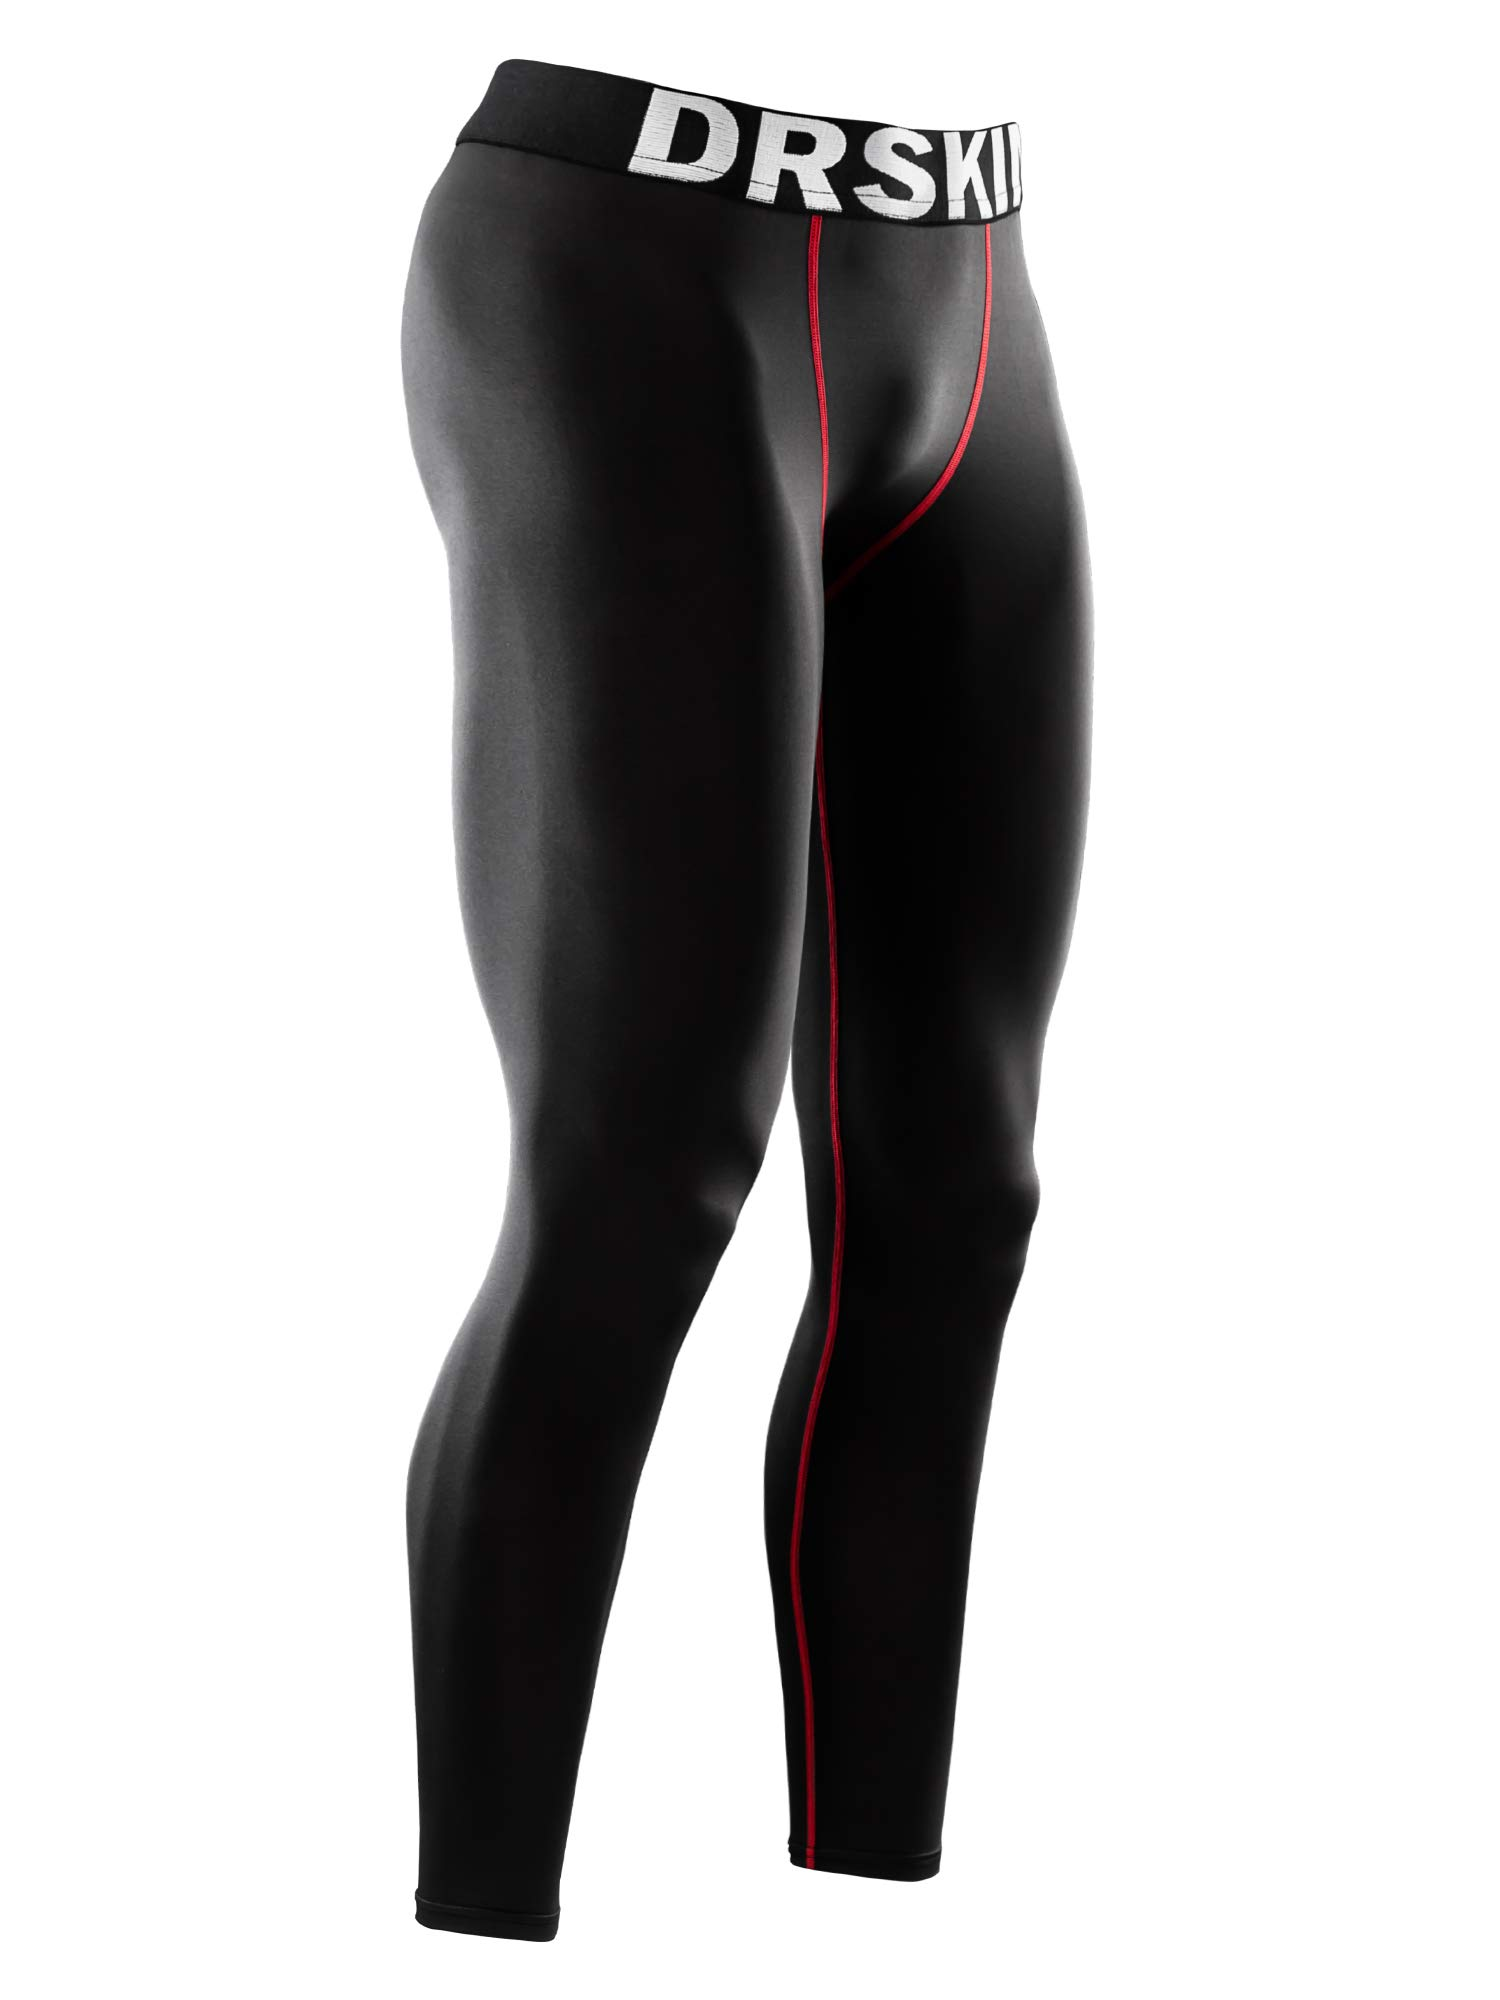 DRSKIN Men's Compression Warm Dry Cool Sports Tights Pants Baselayer Running Leggings Yoga (Line BR06, XL) by DRSKIN